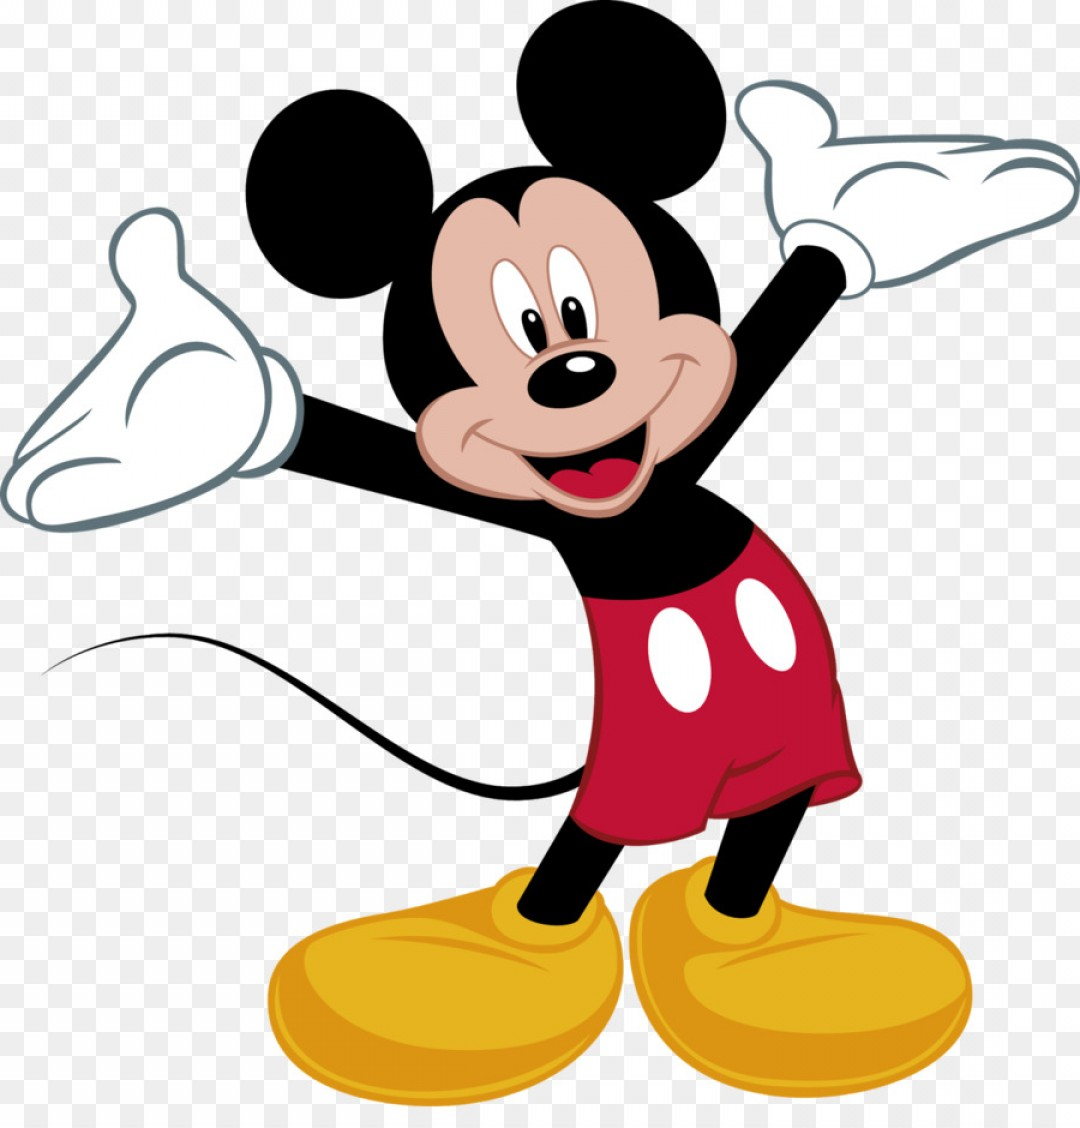 Minnie Mouse Vector Clip Art: Png Mickey Mouse Minnie Mouse Donald Duck Pluto Clip A